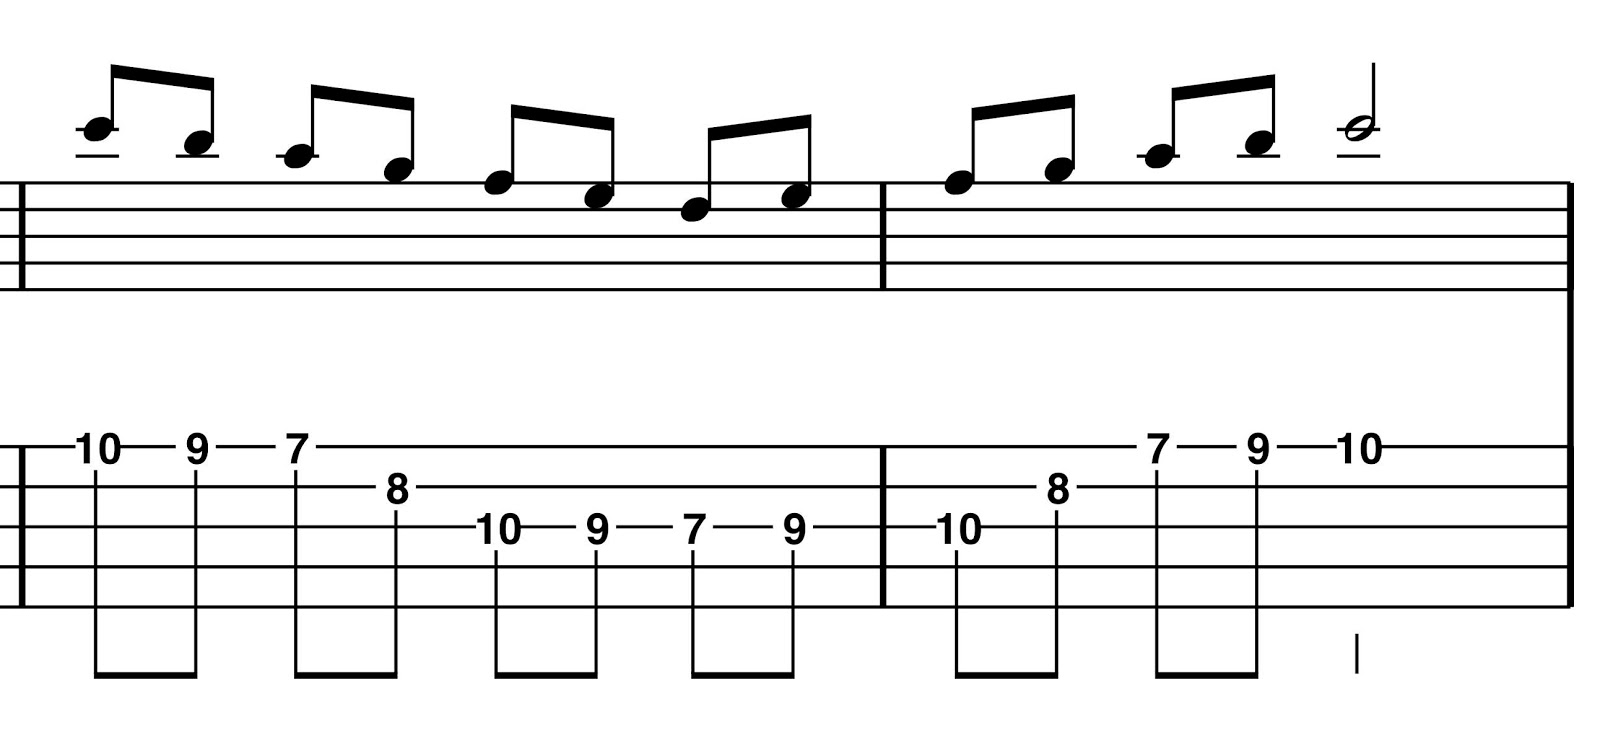 Jocko's Jazz Banjo Page (or: relax, you can do this)